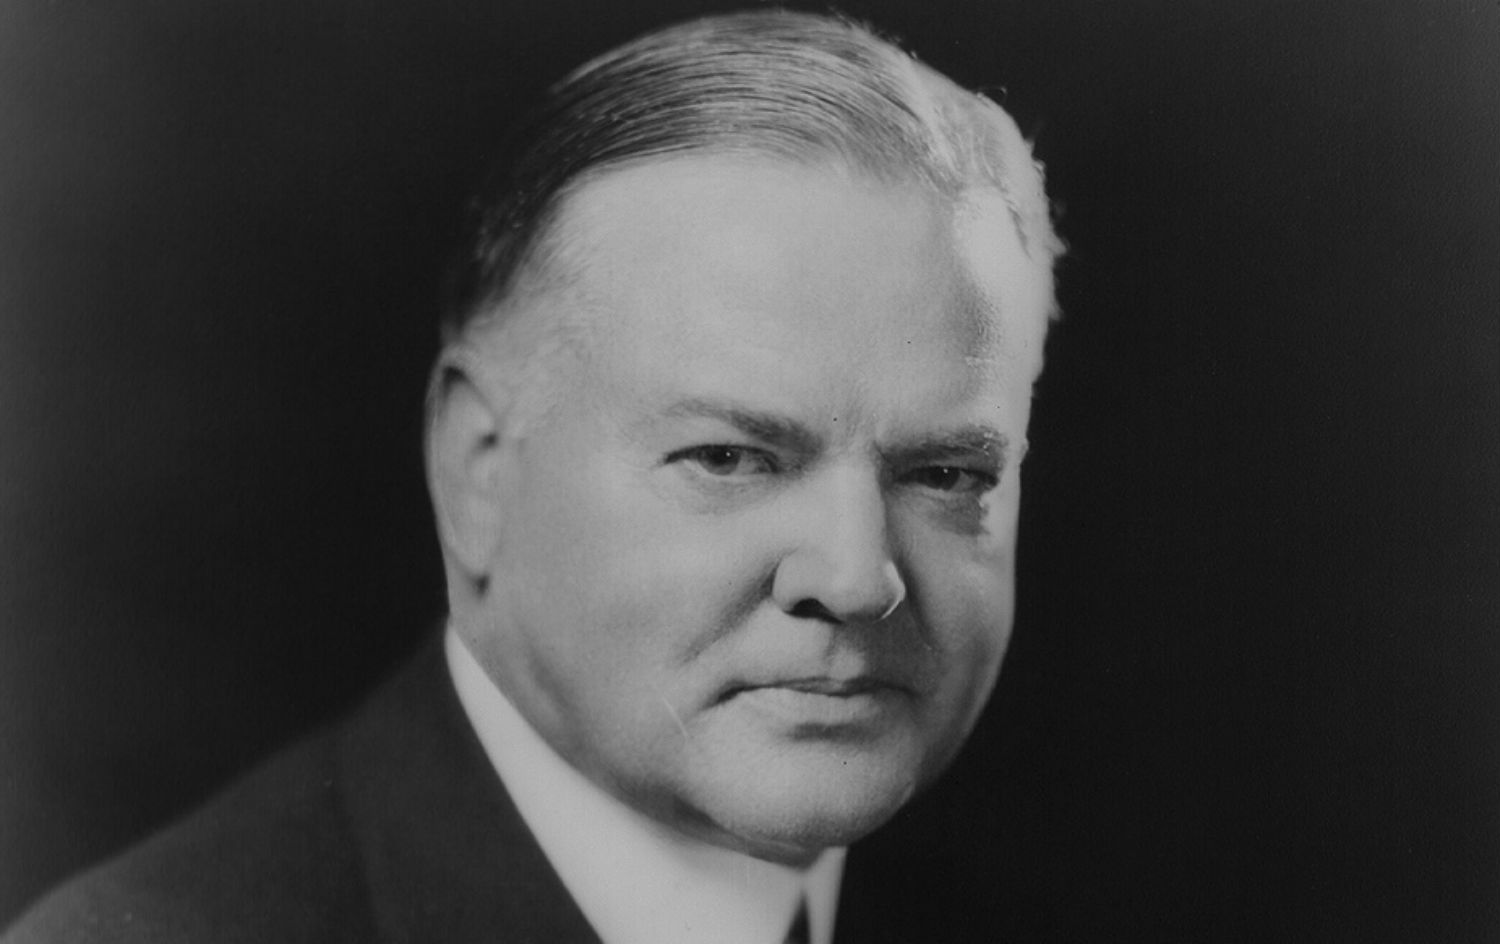 pHerbert-Hoover39s-1931-Thanksgiving-address-was-insulting-to-poor-and-unemployed-US-citizens.-Library-of-Congressp